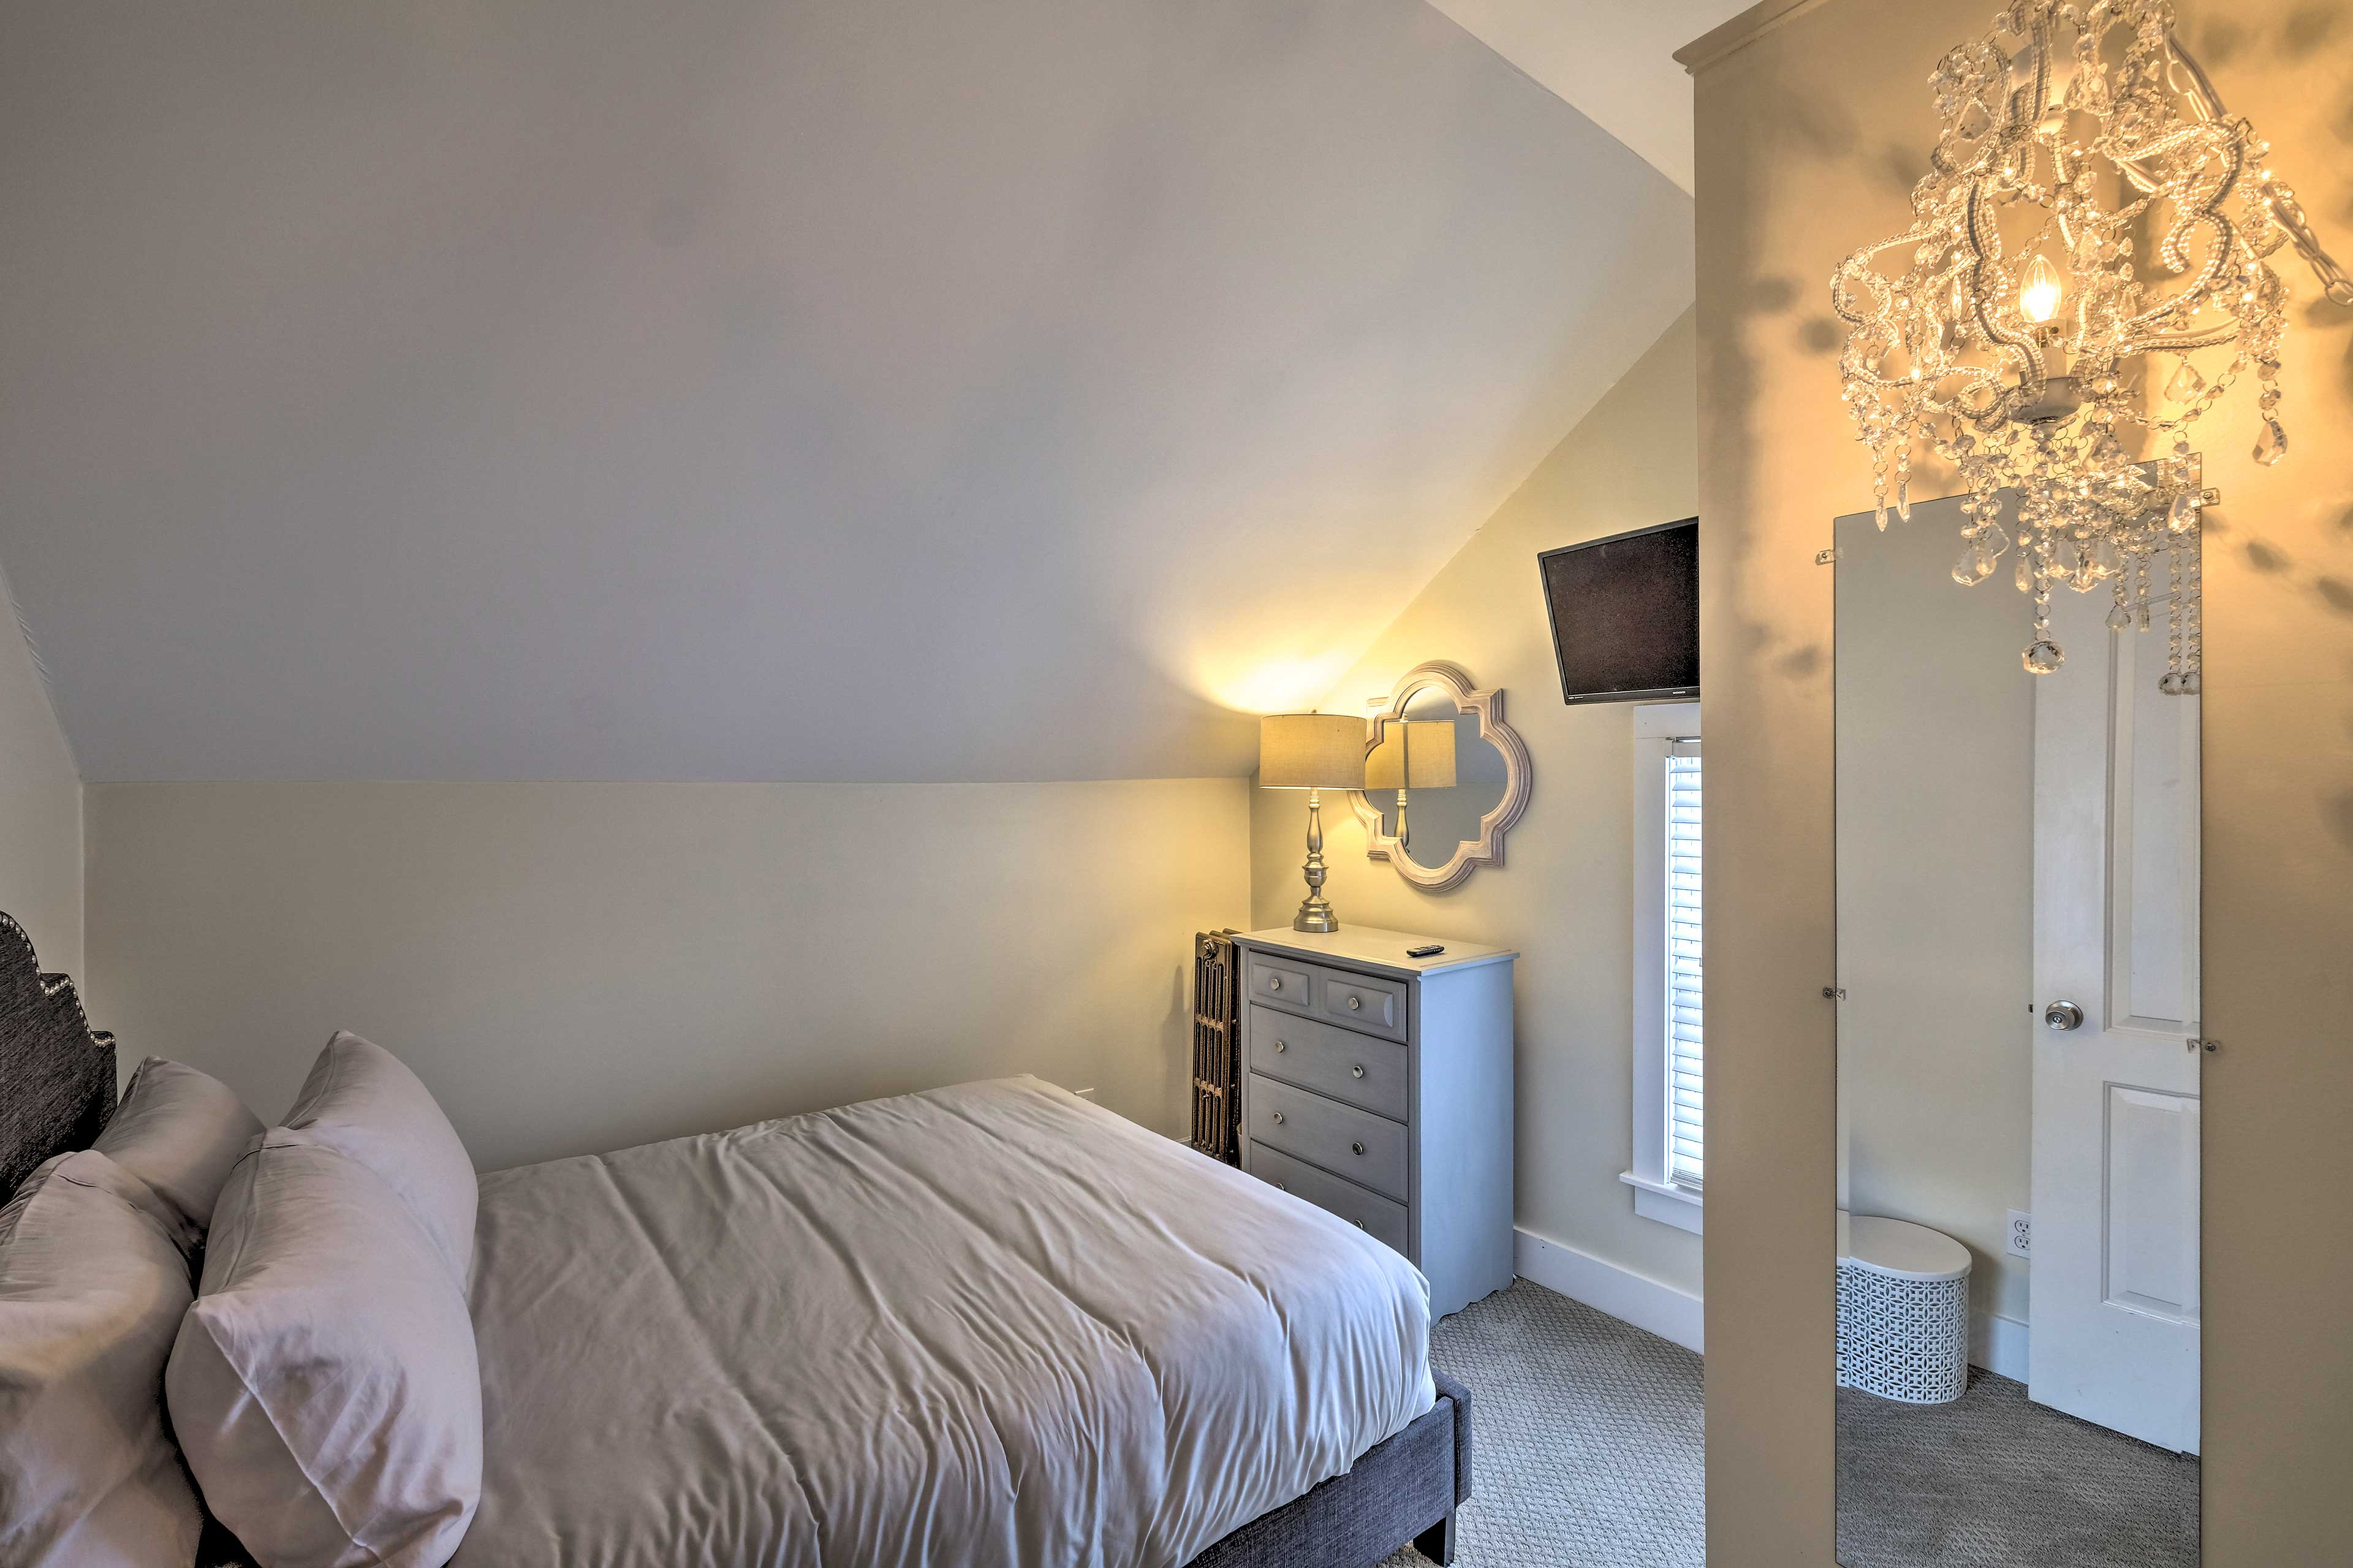 The 3rd bedroom boasts a cozy queen-sized bed for 2.